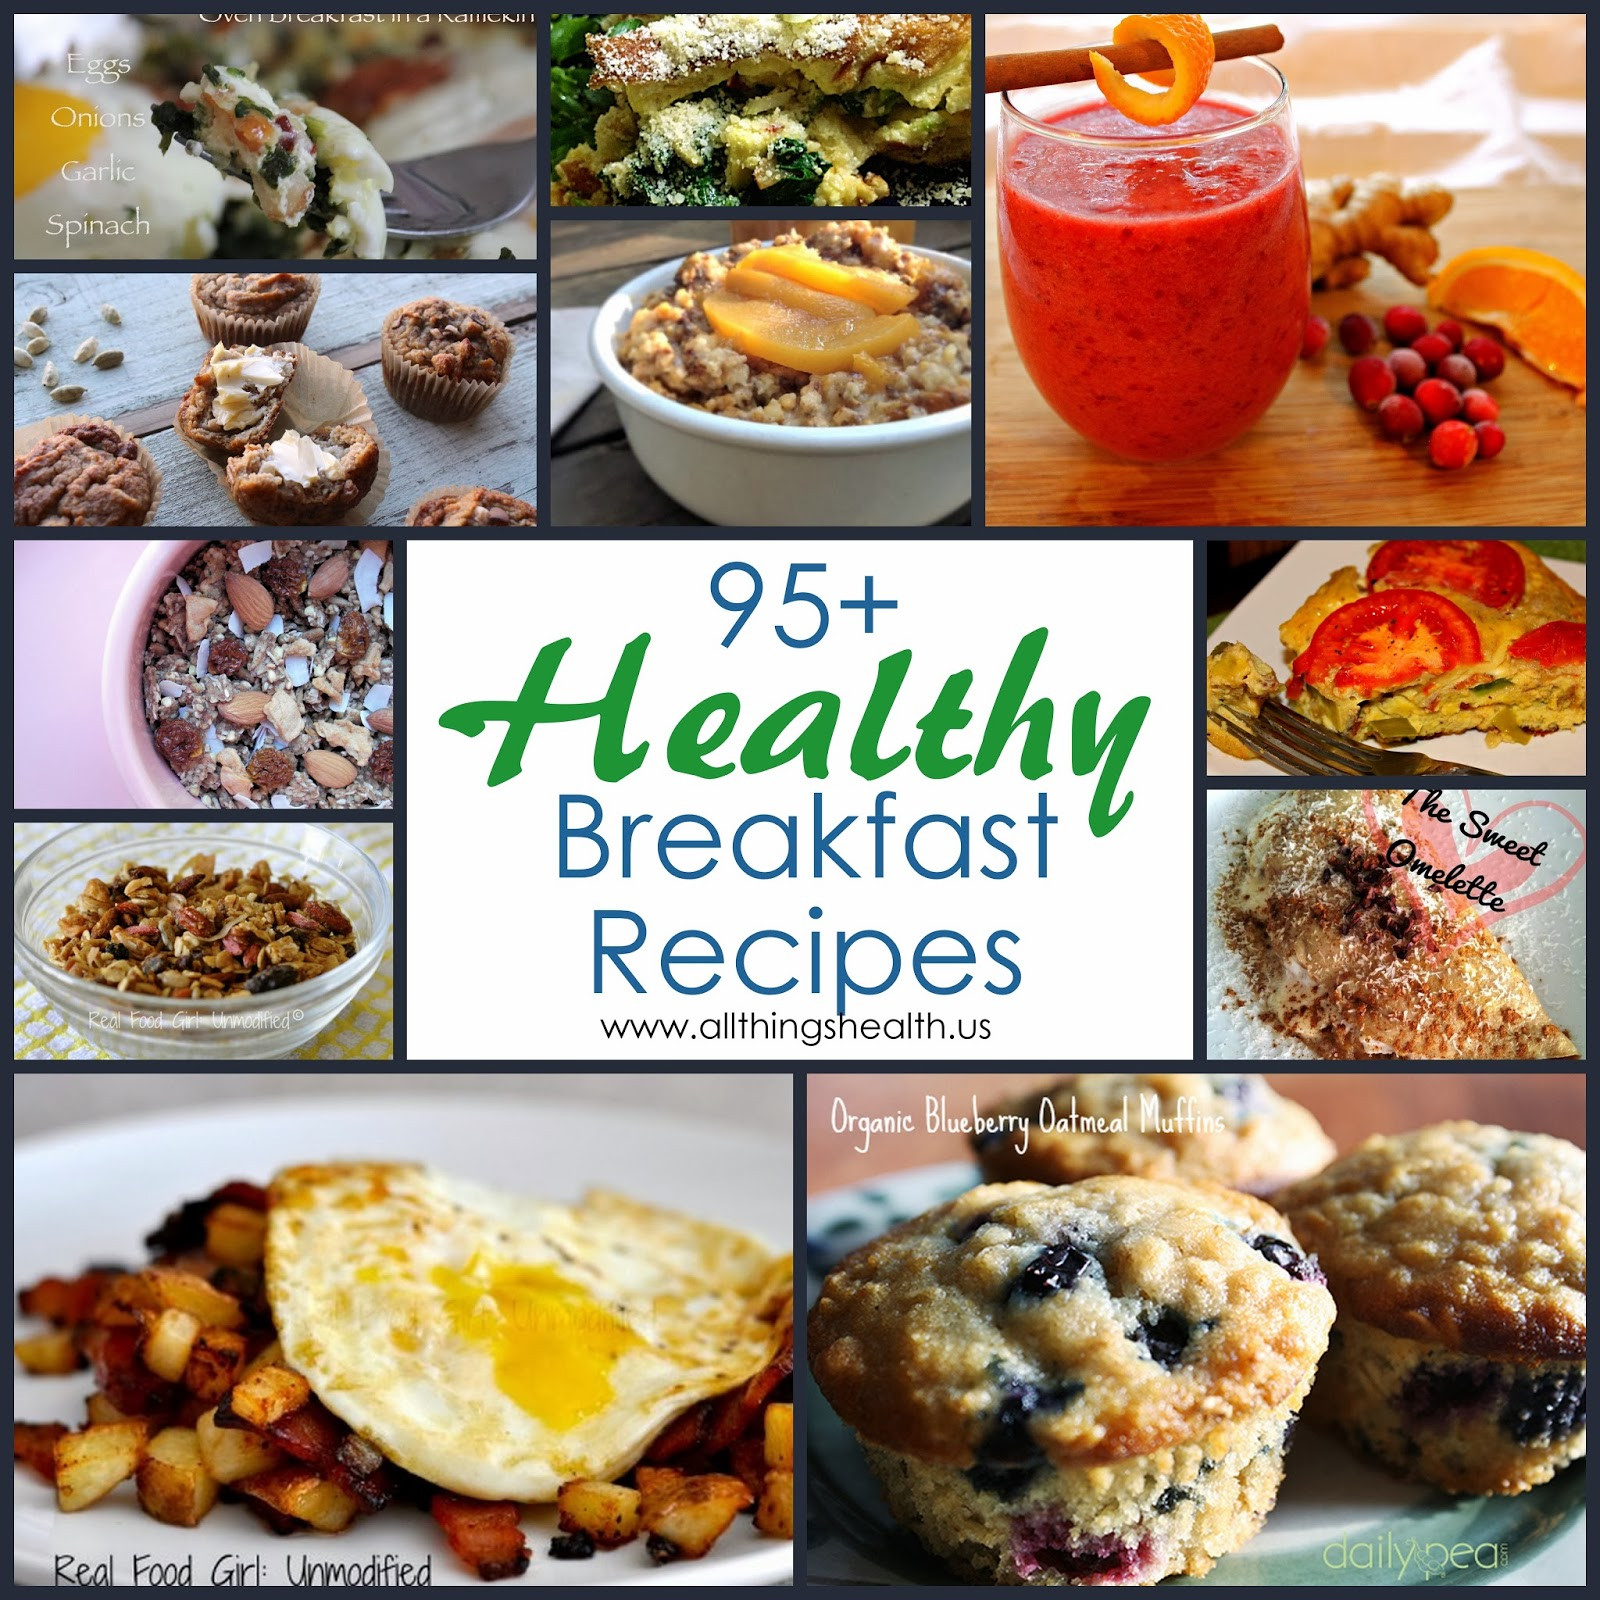 Healthy Breakfast Items  All Things Health 95 Healthy Breakfast Recipes